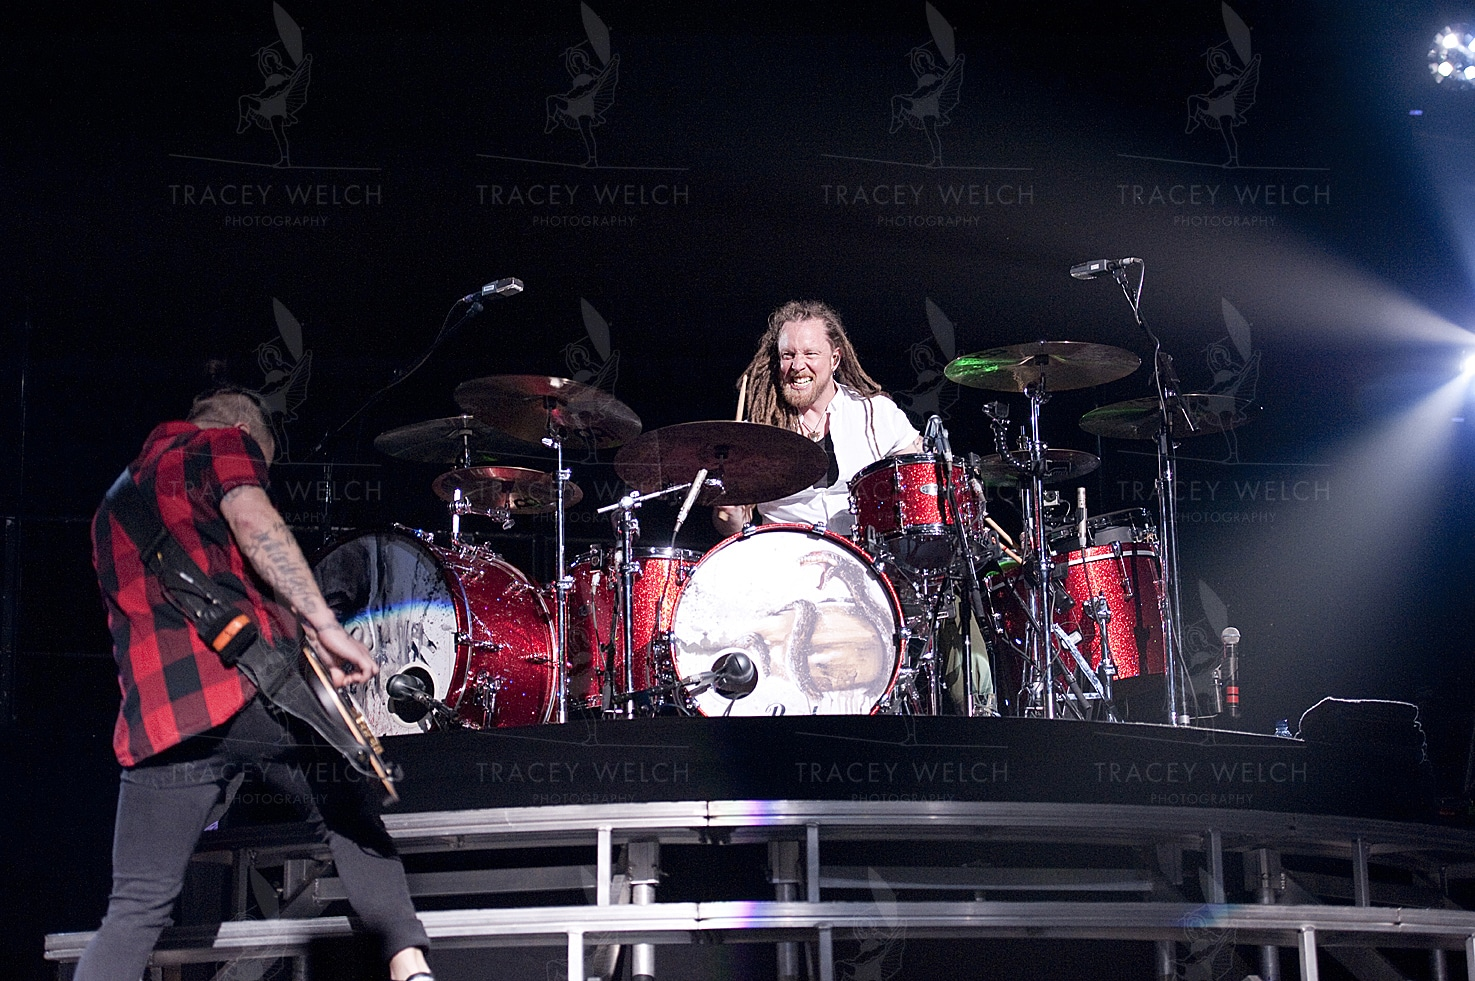 Eric Bass and Barry Kerch, Bassist and Drummer of Shinedown, Live at Leeds